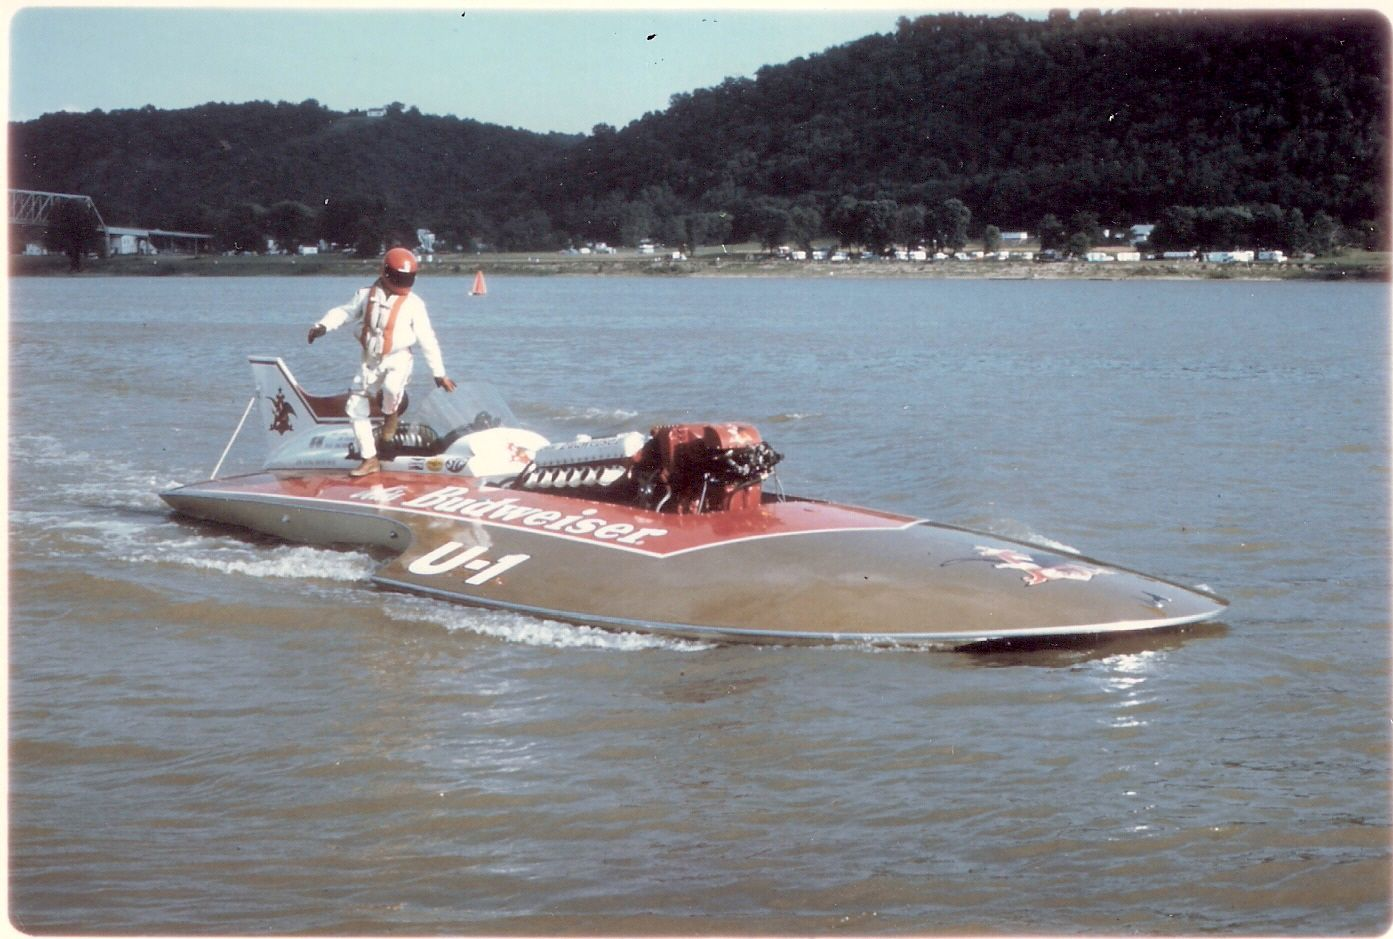 196870 Miss Budweiser Hydroplane racing, Boat, Boat race